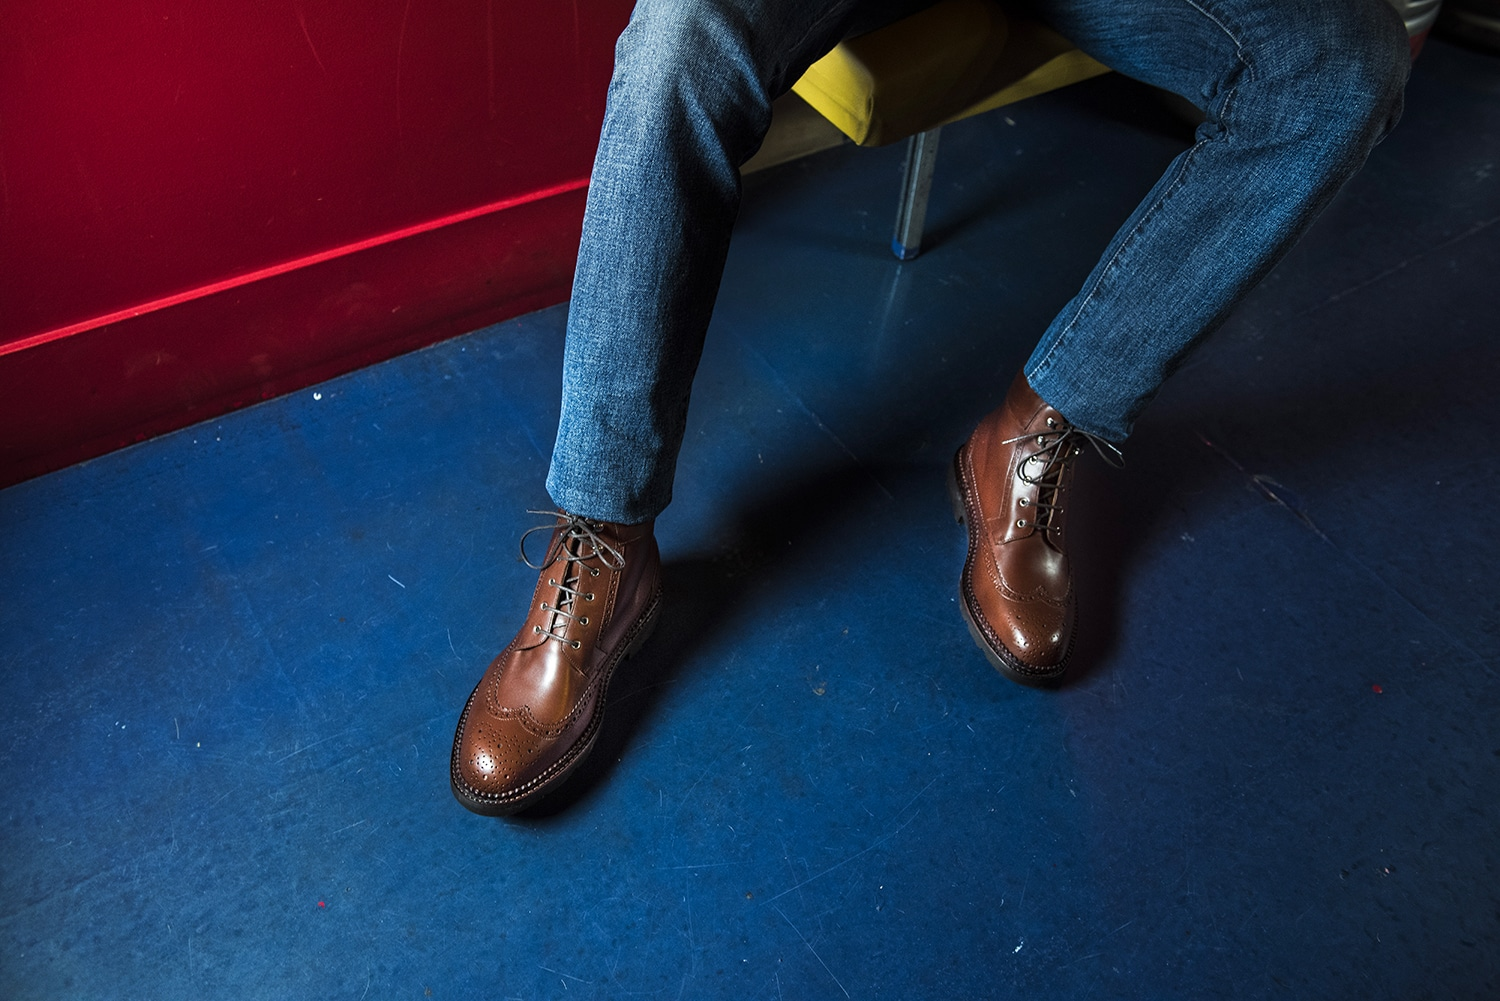 workbootbrun - Work boots, City Boots & chukkas : 6 nouvelles versions